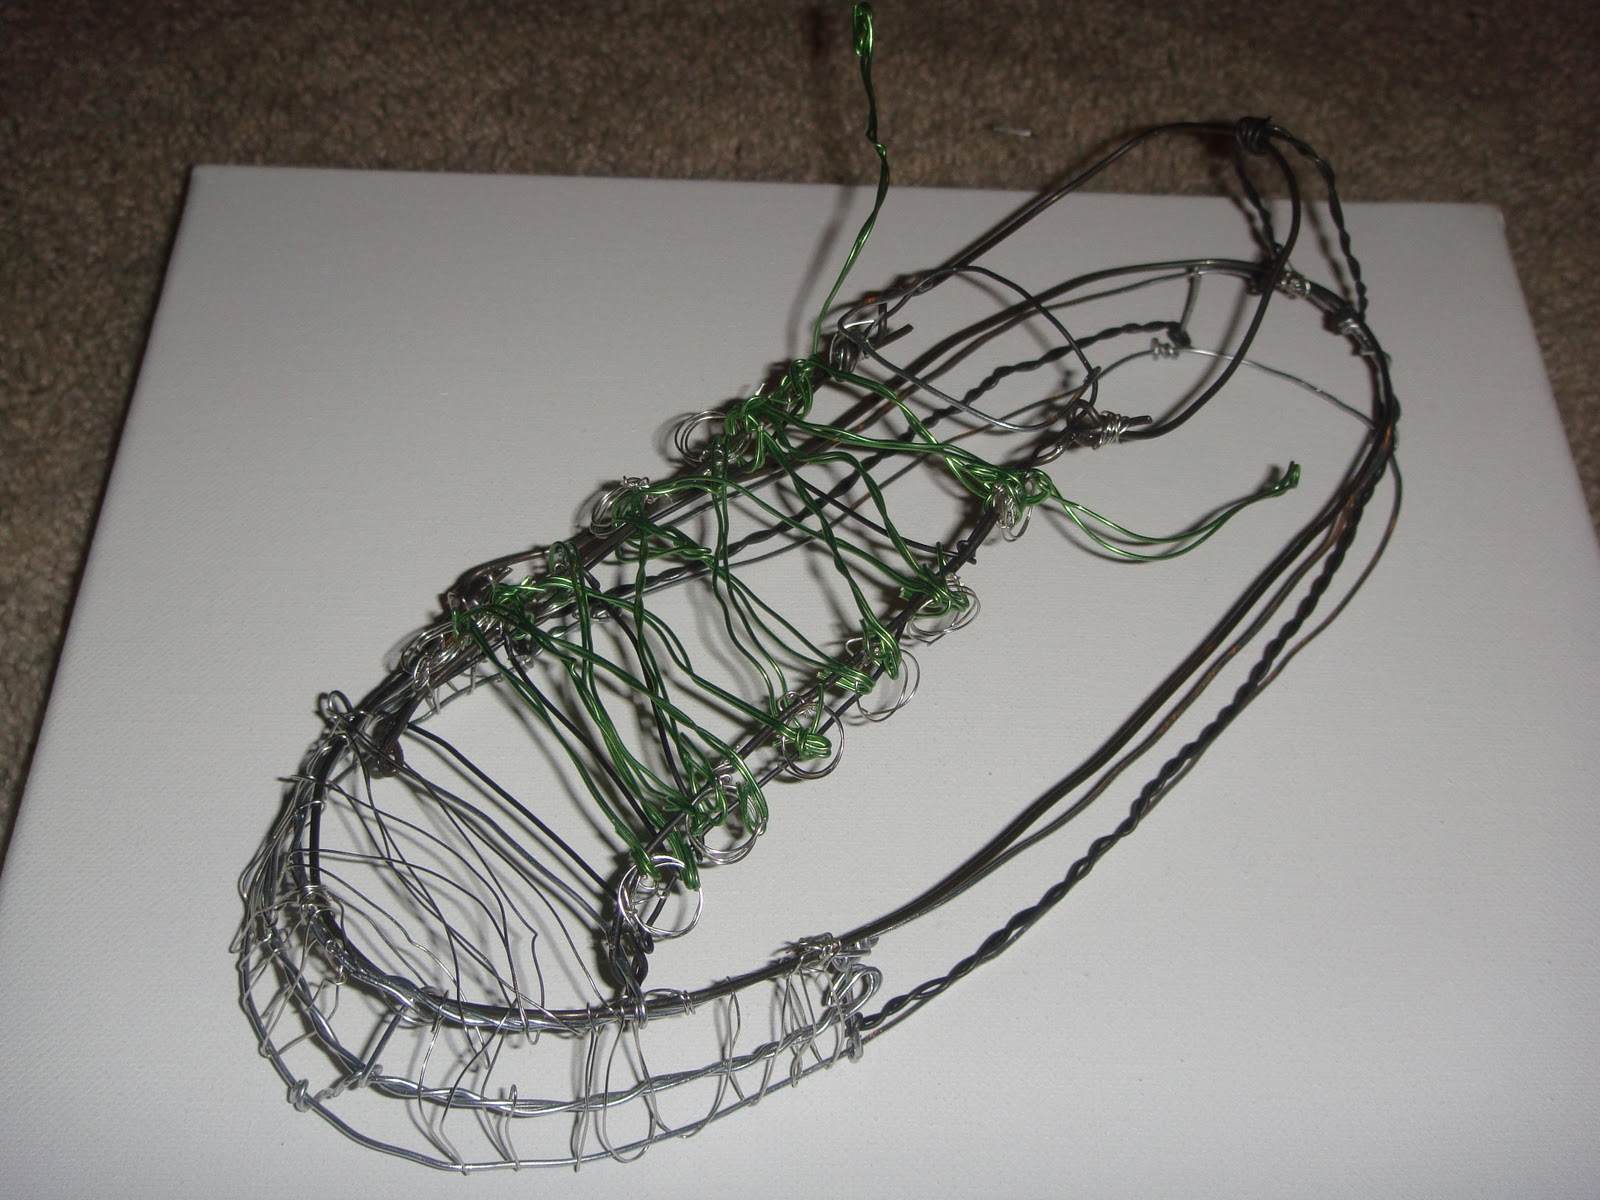 3D Studio: Cross Contour Line/Wire Assignment